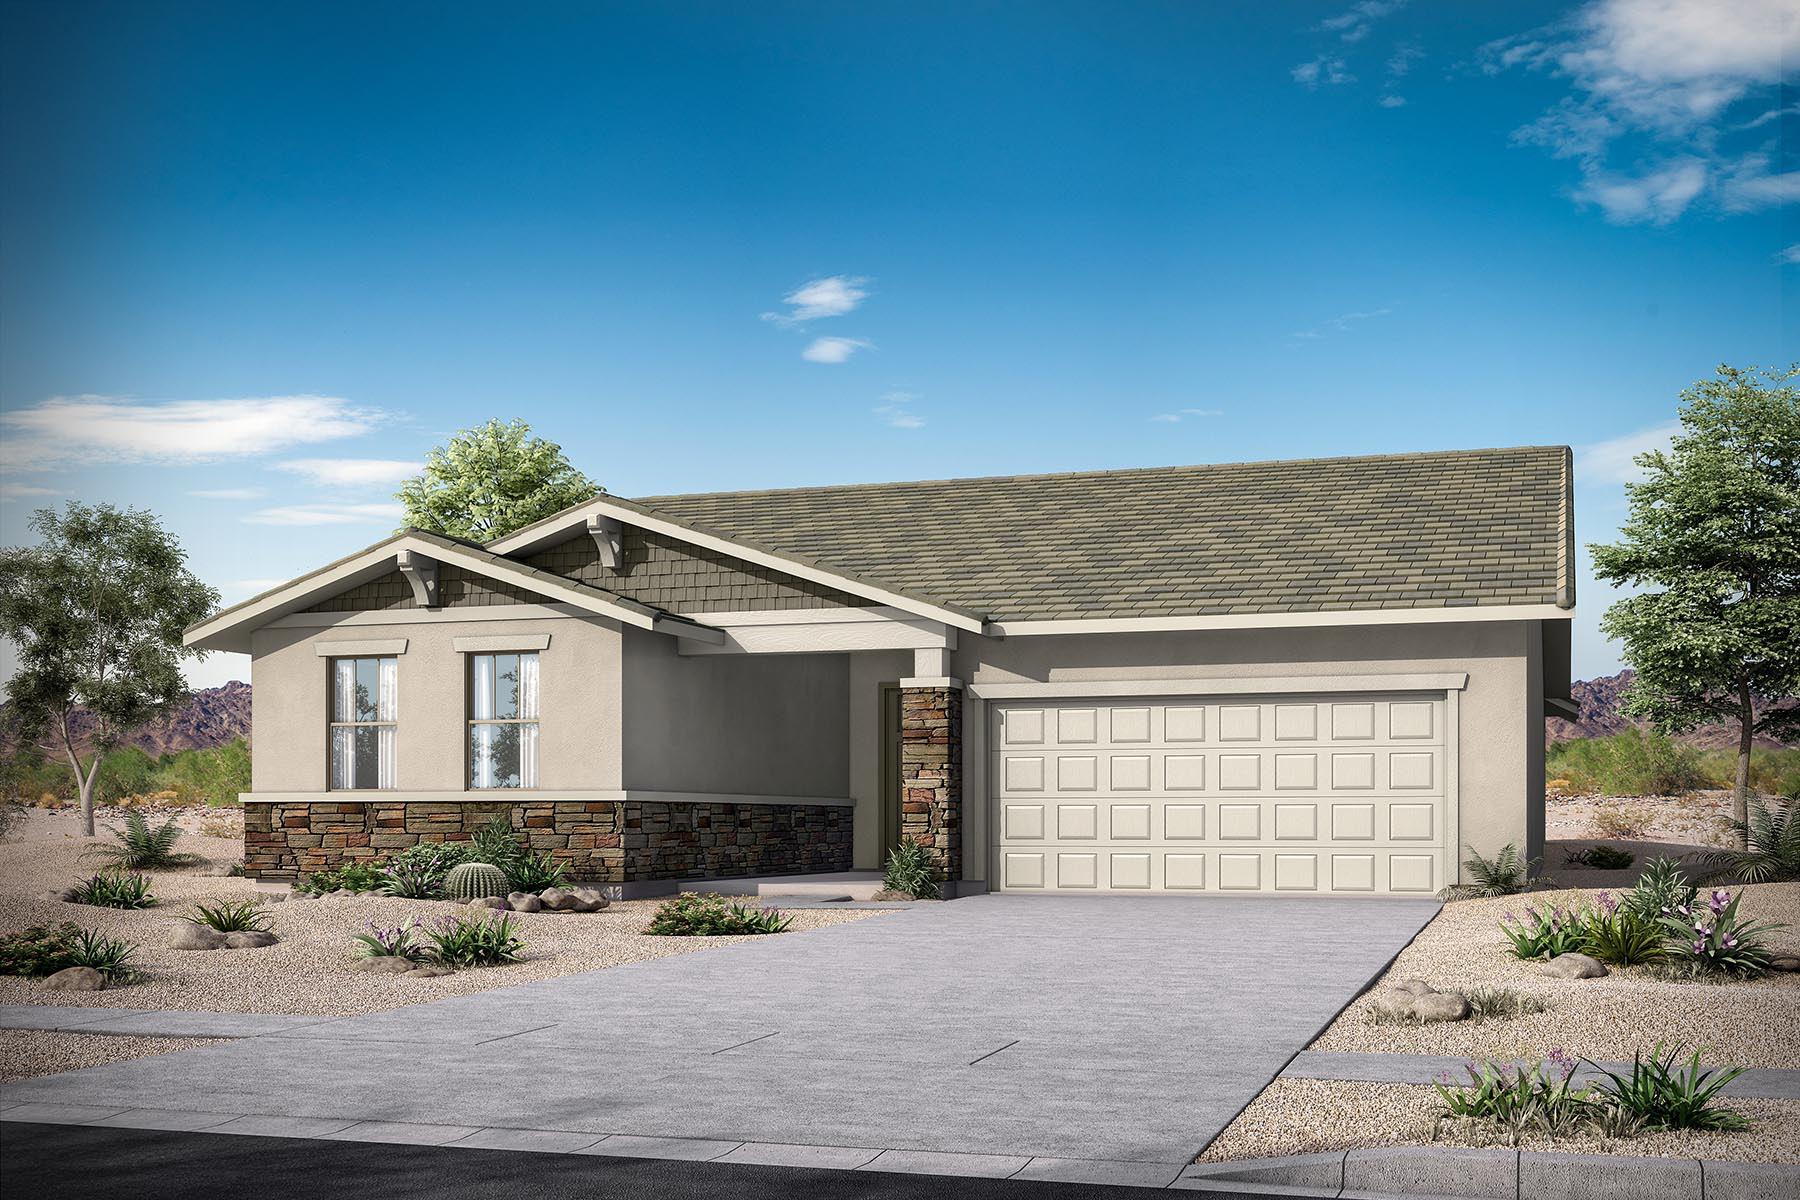 Aries Plan Elevation Front at Azure Canyon in Litchfield Park Arizona by Mattamy Homes